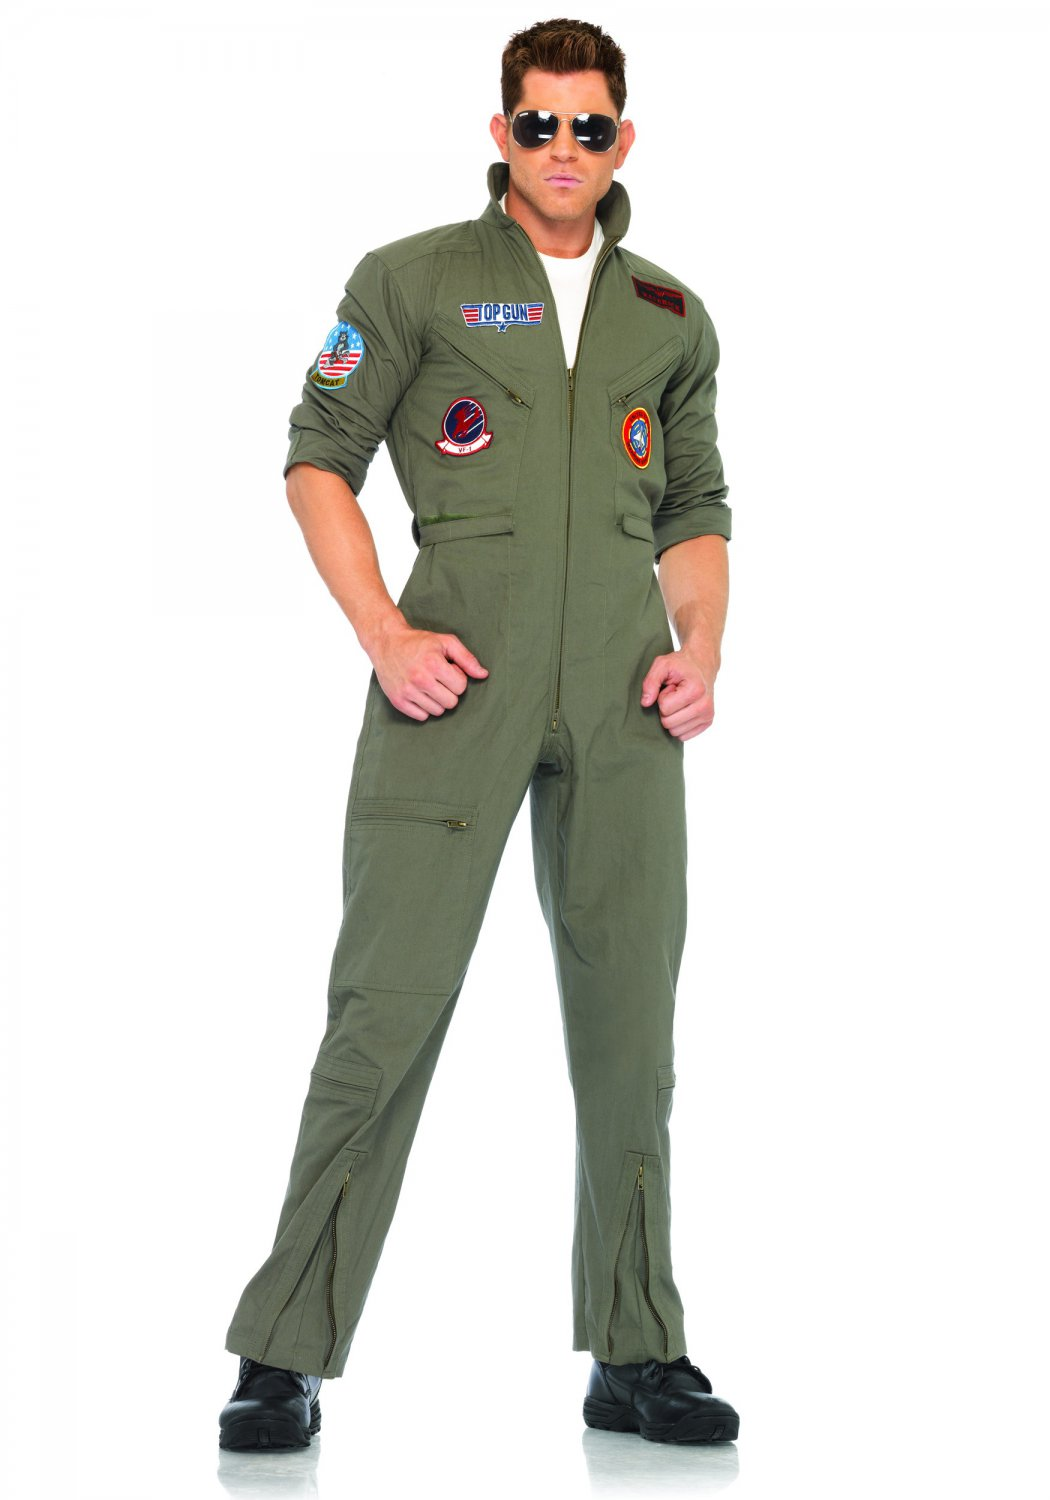 Leg Avenue Top Gun Flight Suit Size 2X